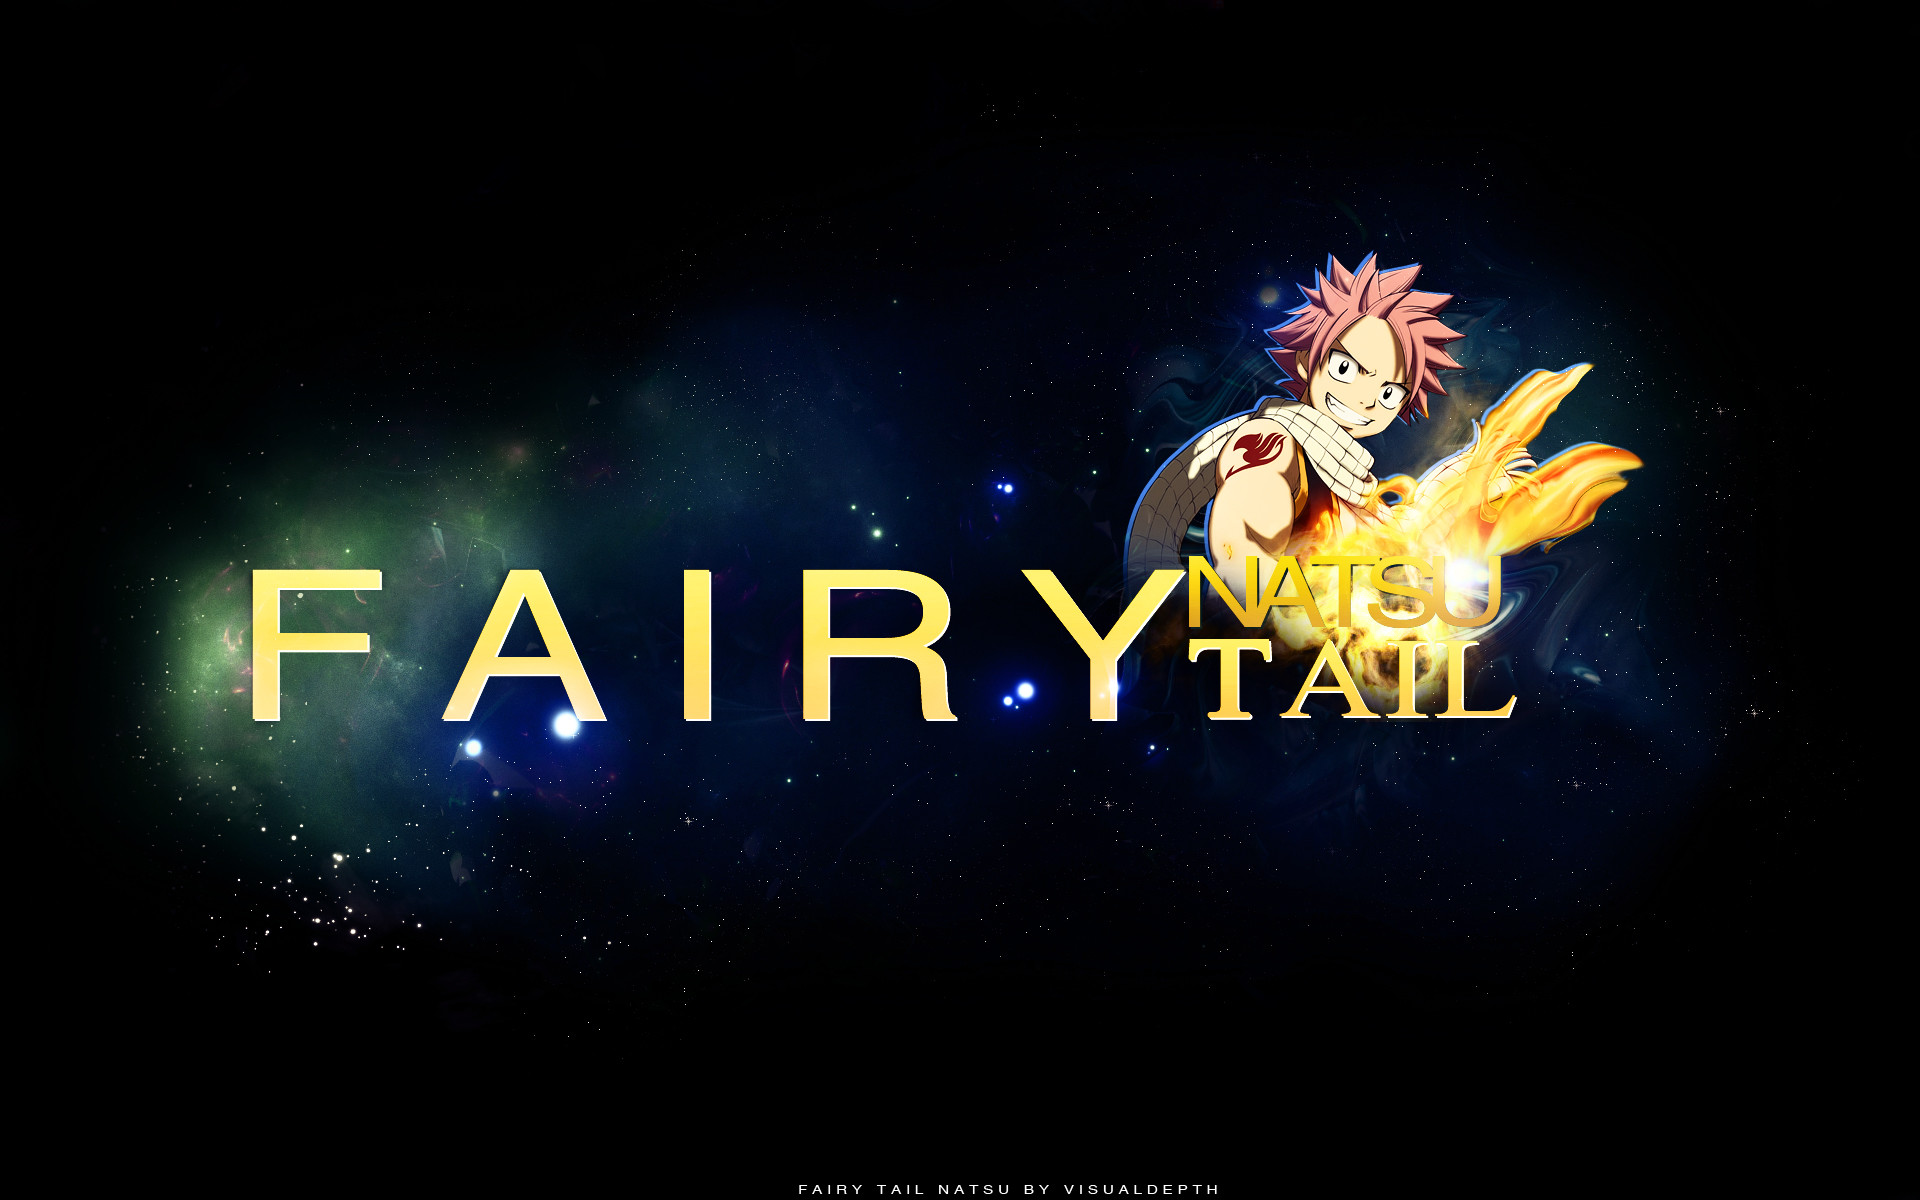 1920x1200 Fairy Tail Logo Desktop Wallpaper - WallpaperSafari